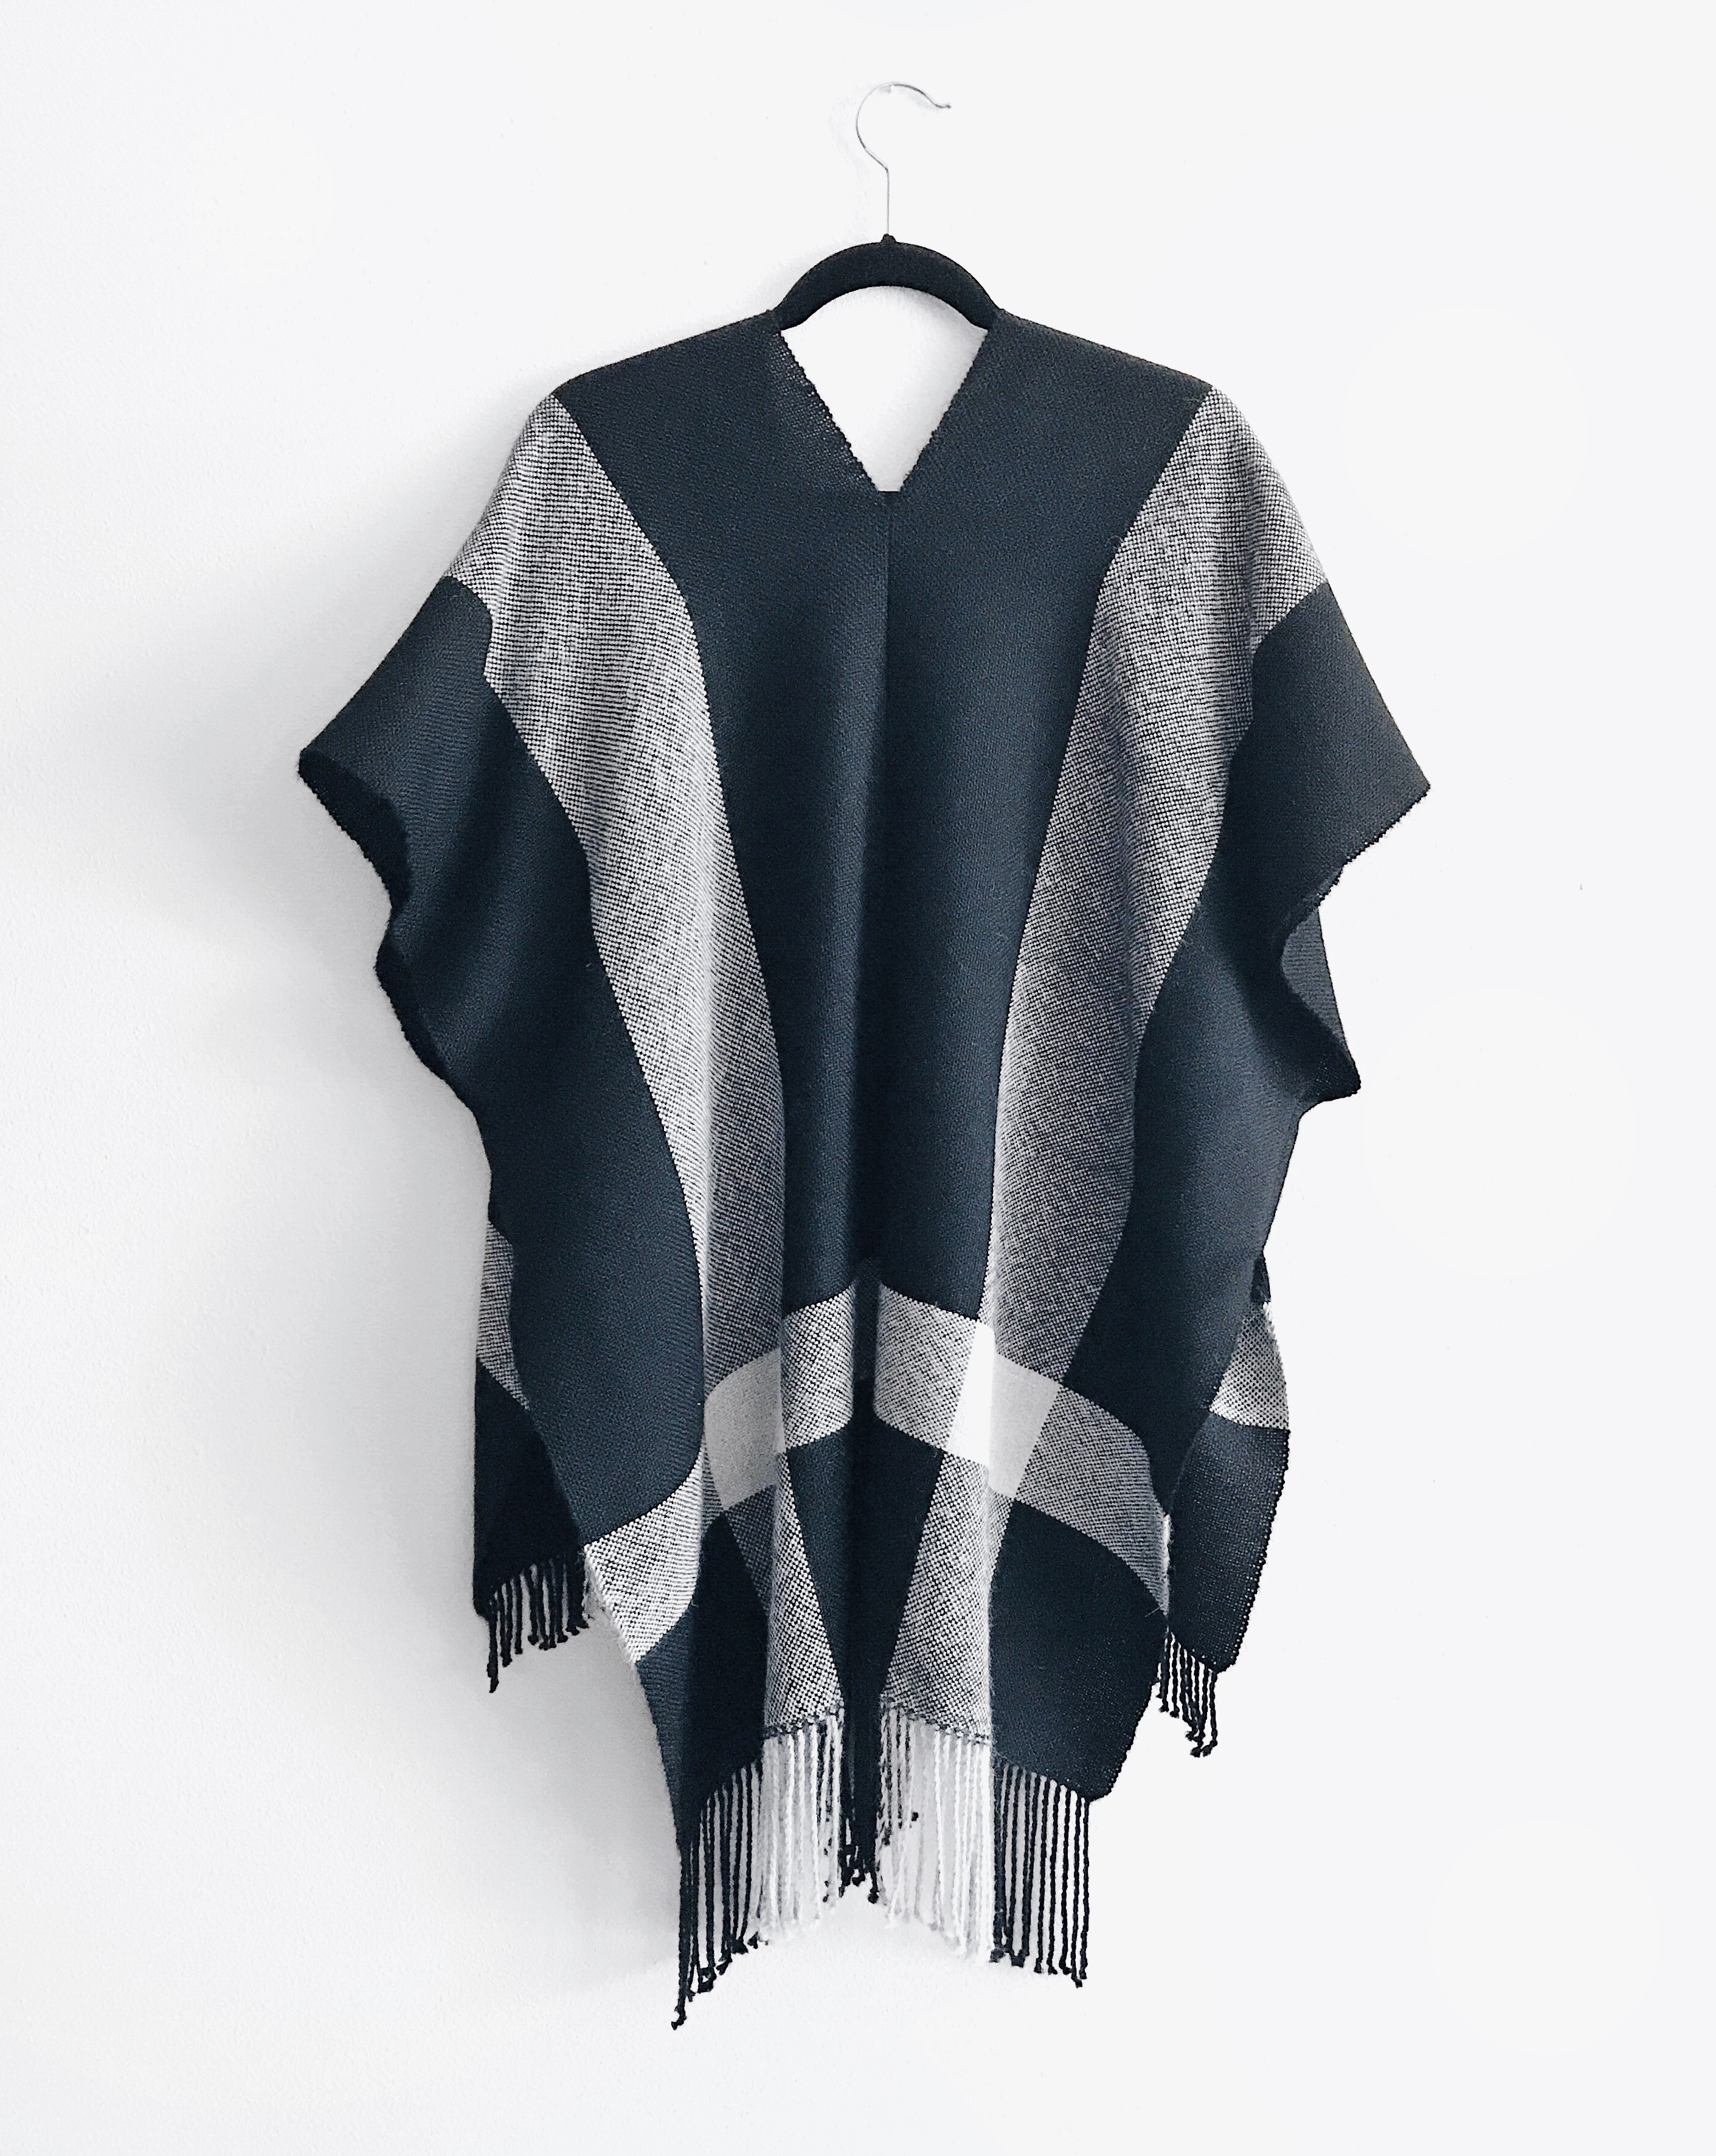 Free Pattern to Weave and Sew a Simple Alpaca Poncho or Scarf